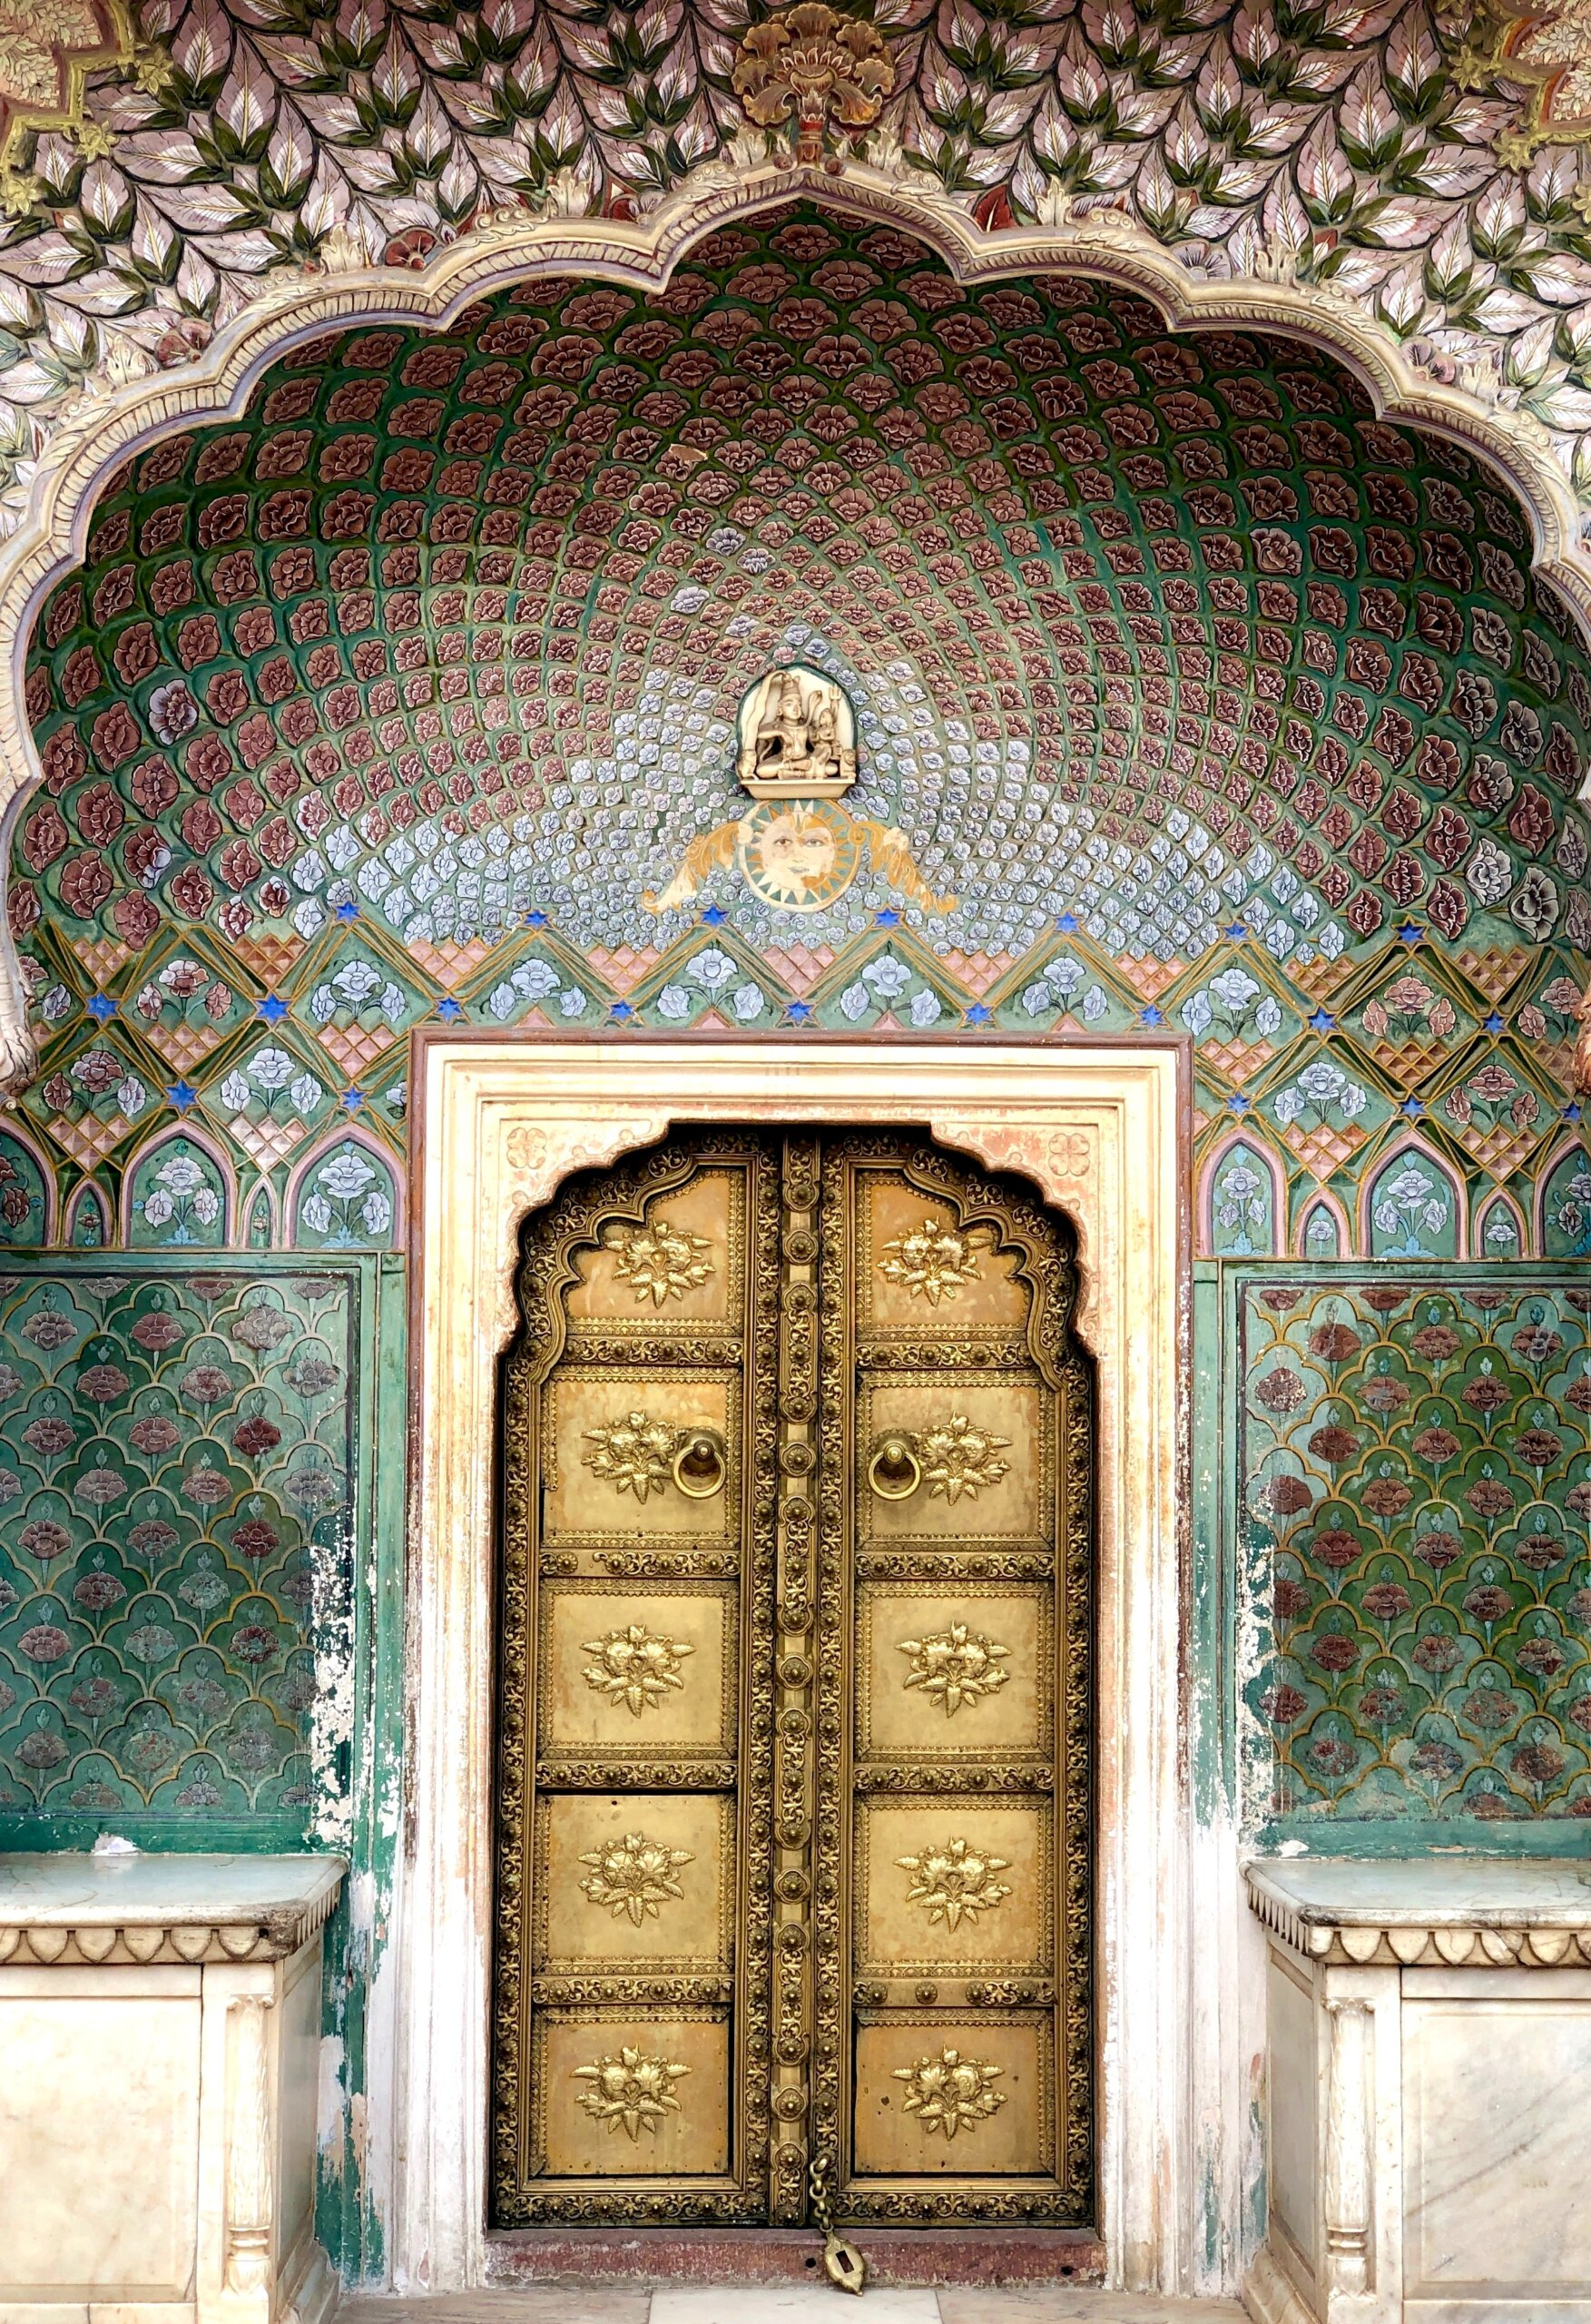 Jaipur Rajasthan India beautiful ornate door travel sights historic city